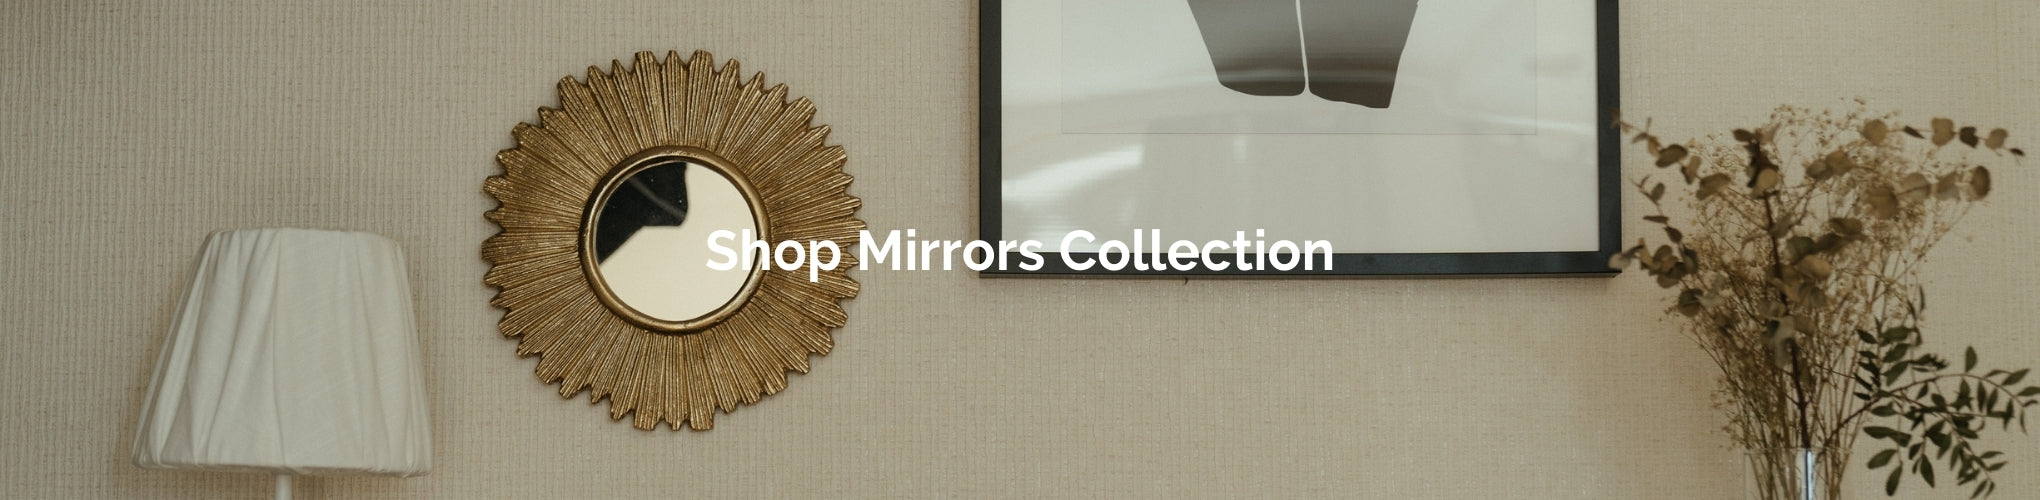 Mirrors Collection from Estilo Living - Buy Mirrors for small spaces and homes Online Now!